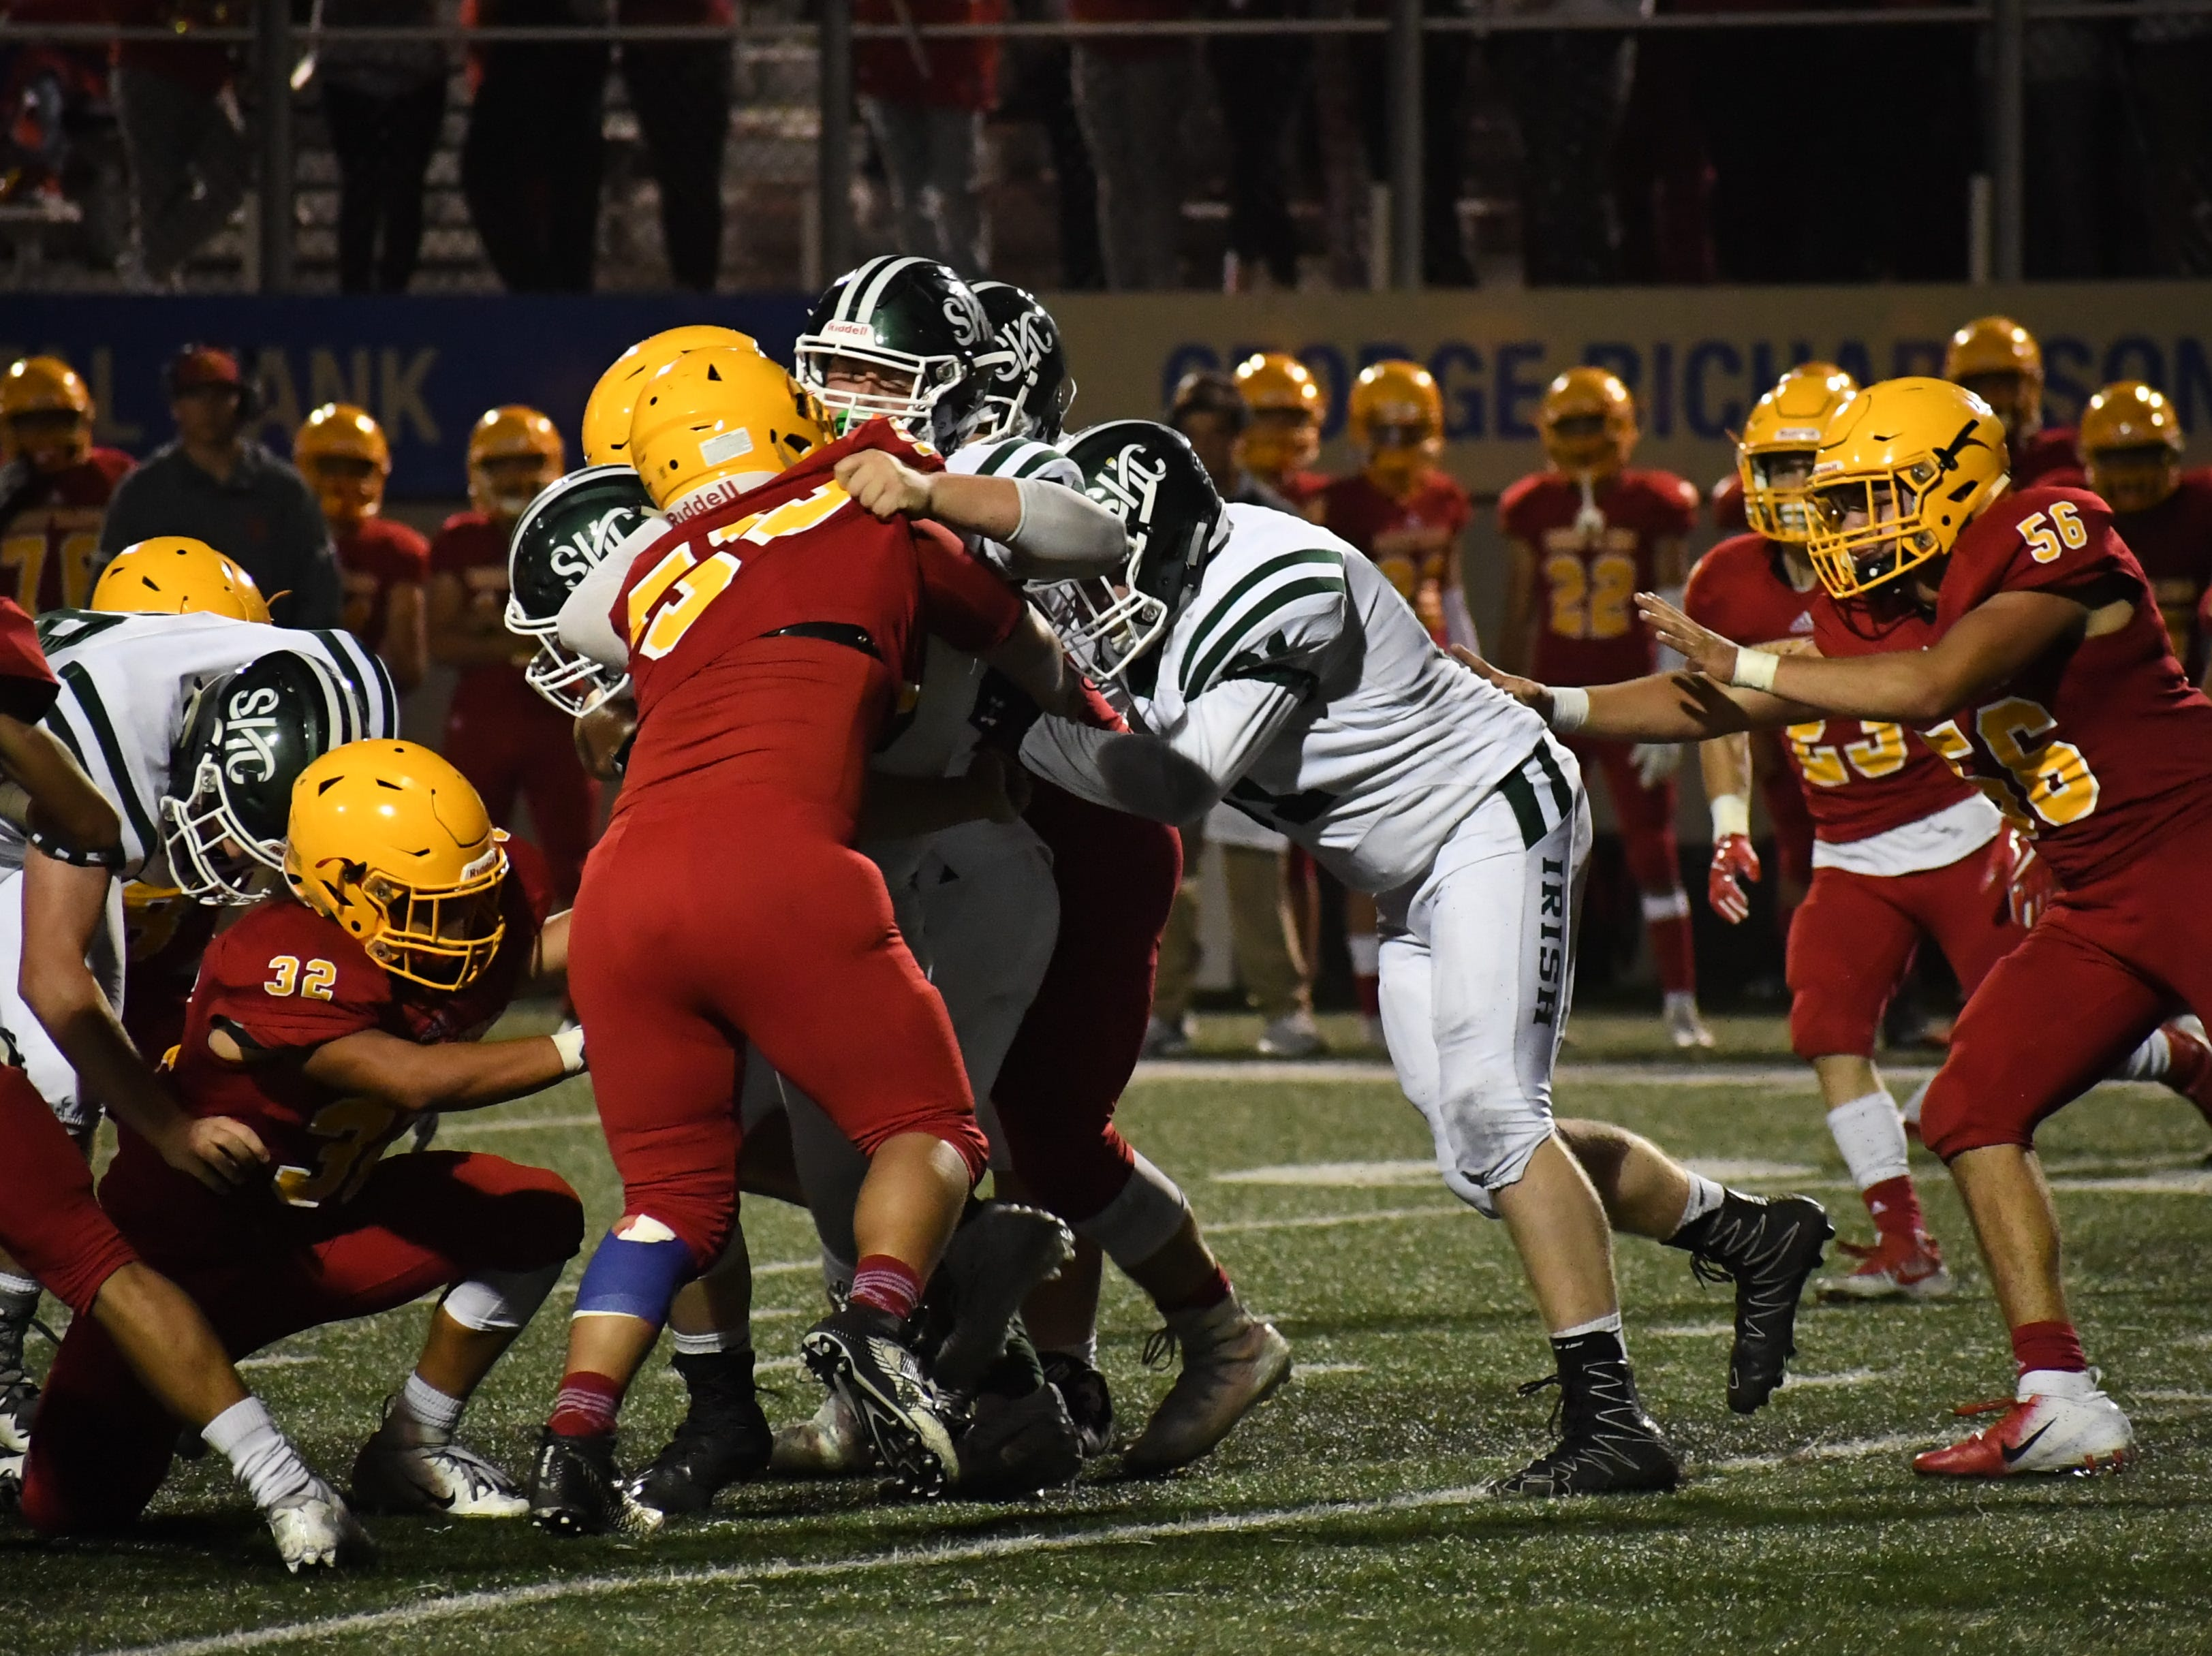 Palma defenders Diego Guajardo (32) and Jose Velazquez (56) wrap up a Sacred Heart Cathedral running back.